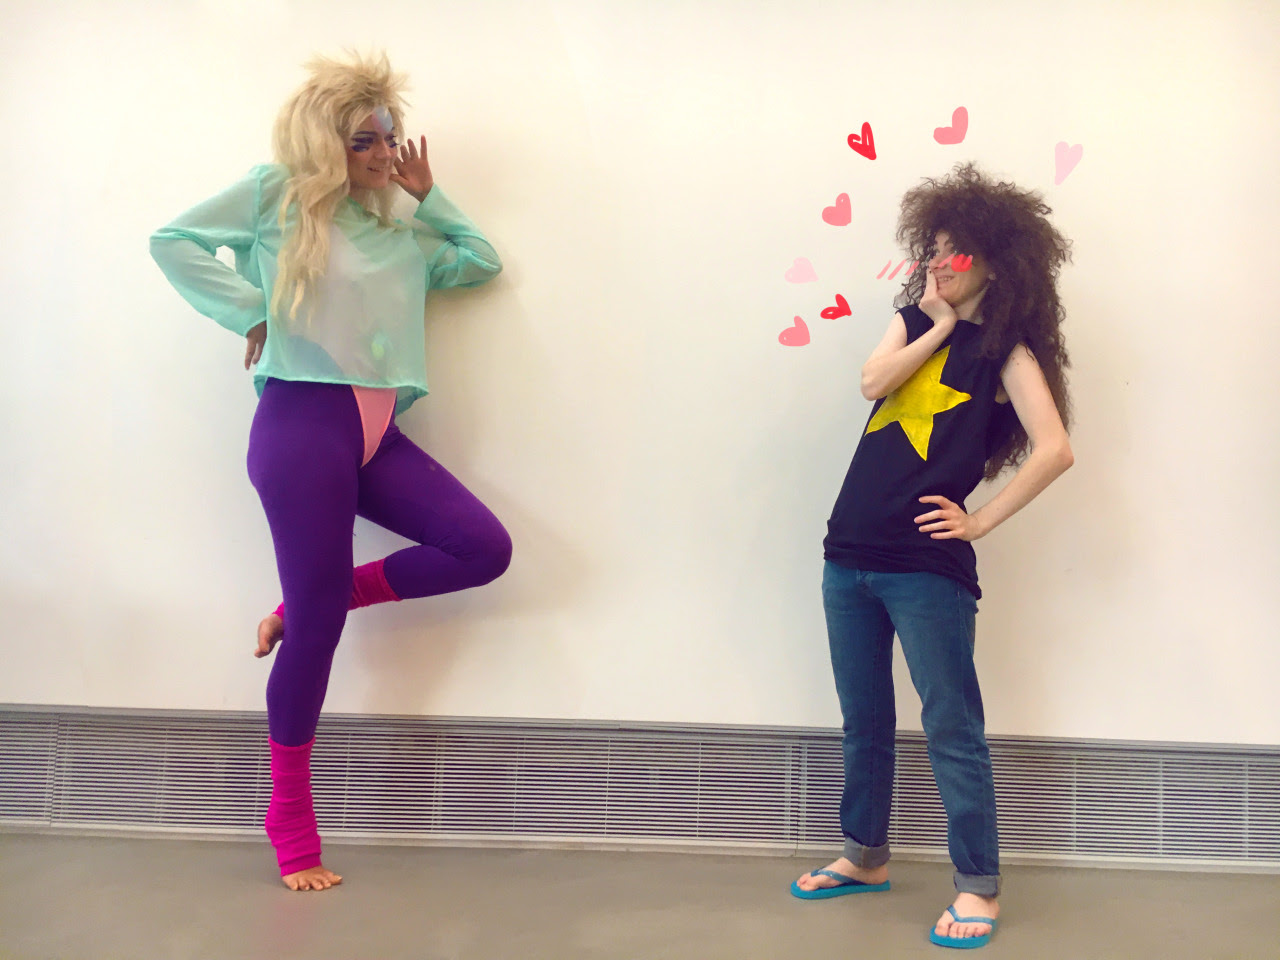 omfg @speedmagick came up to Boston and we did a rainbow quartz/young greg cosplay shoot based on this comic by @gem-science rainbow quartz is me young greg is @speedmagick photos by @eyes–like–stars